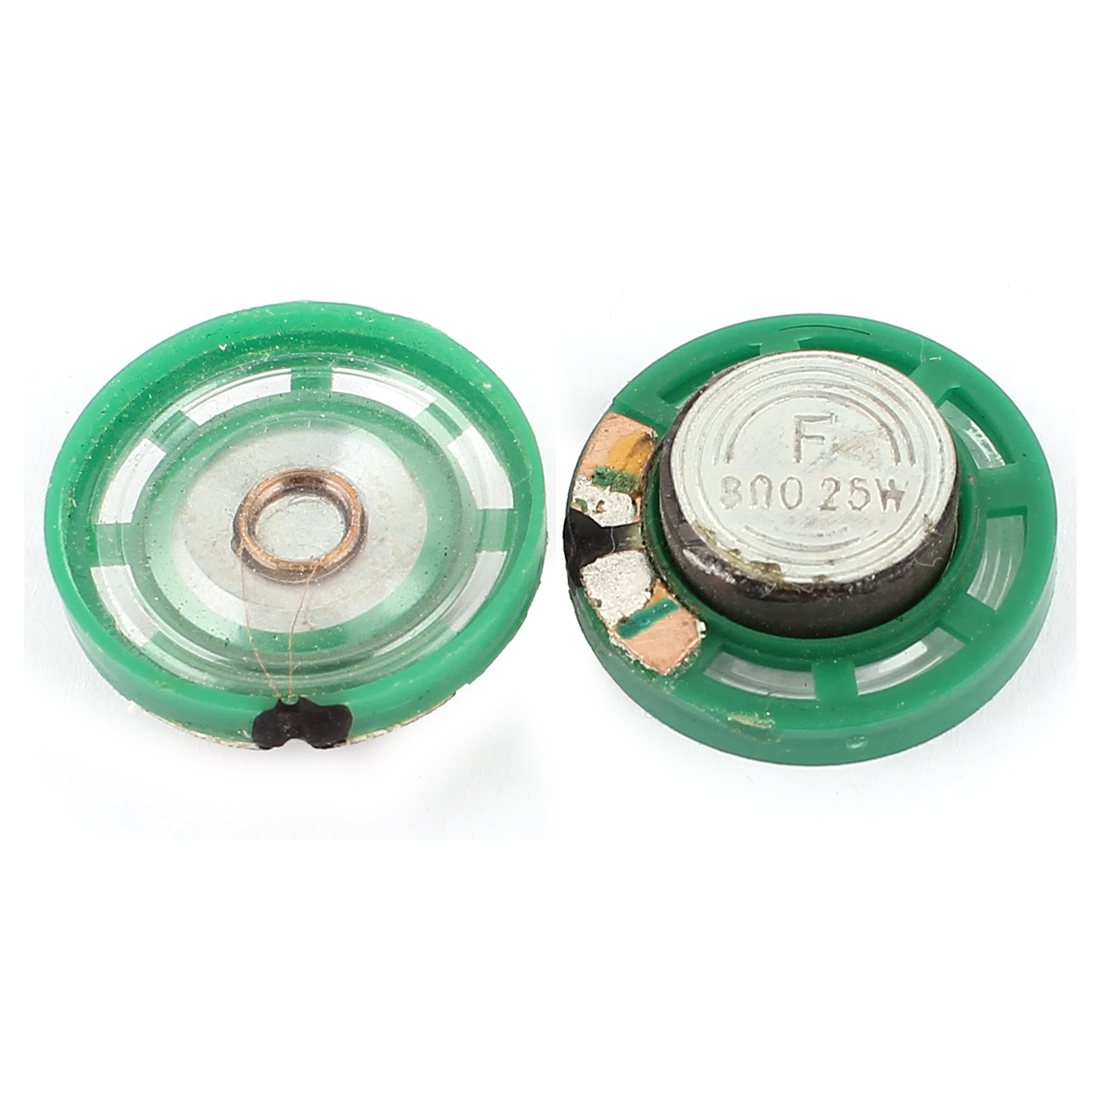 2Pcs 8 Ohm 0.25W 27mm Dia External Magnet Mini Loudspeaker Speaker Horn Green